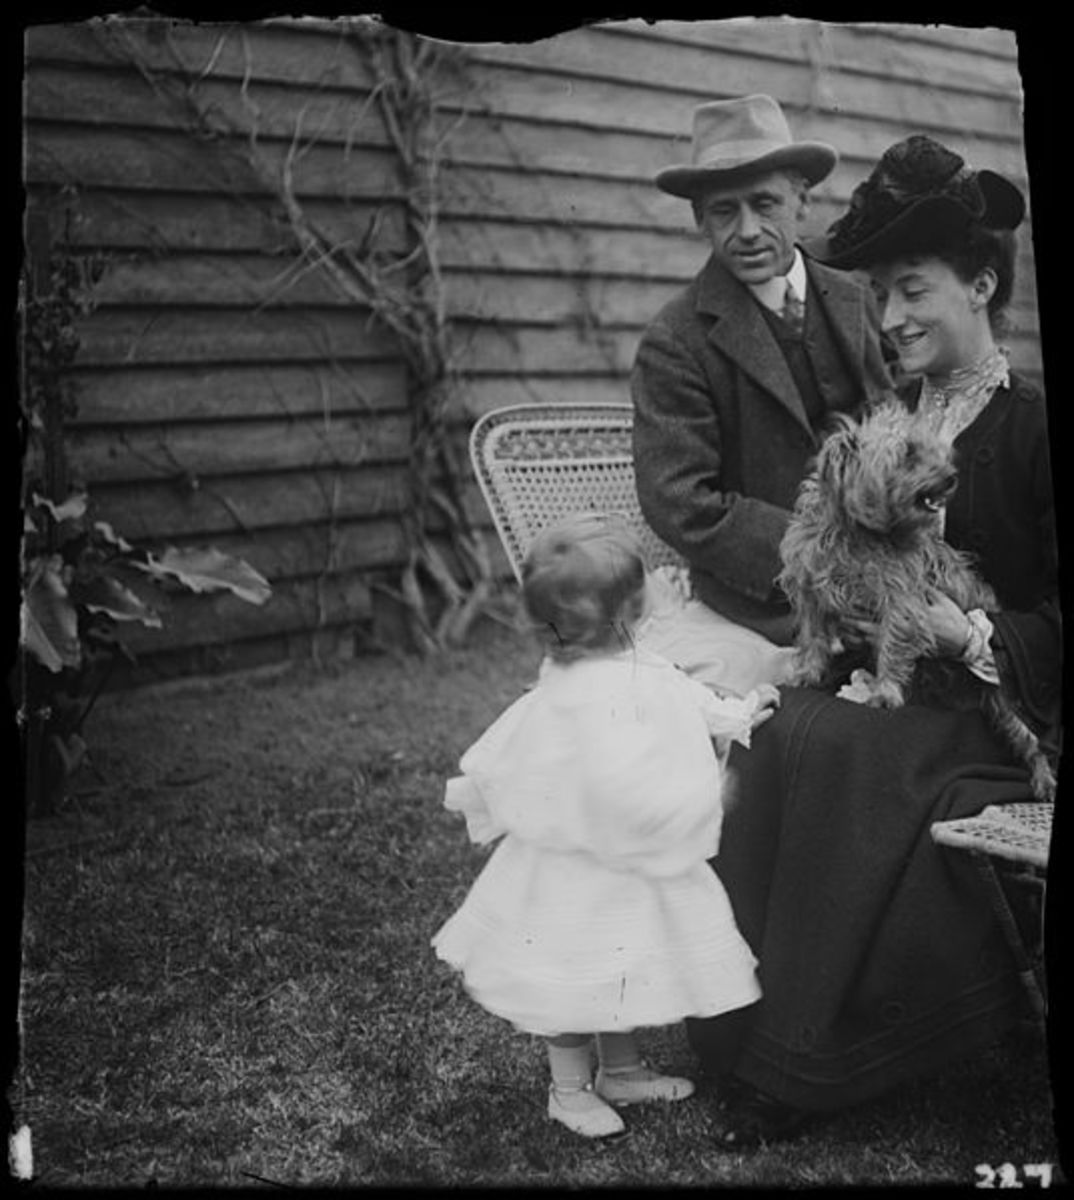 Banjo Paterson with wife Alice and daughter Grace, ca. 1900-1912, by Lionel Lindsay